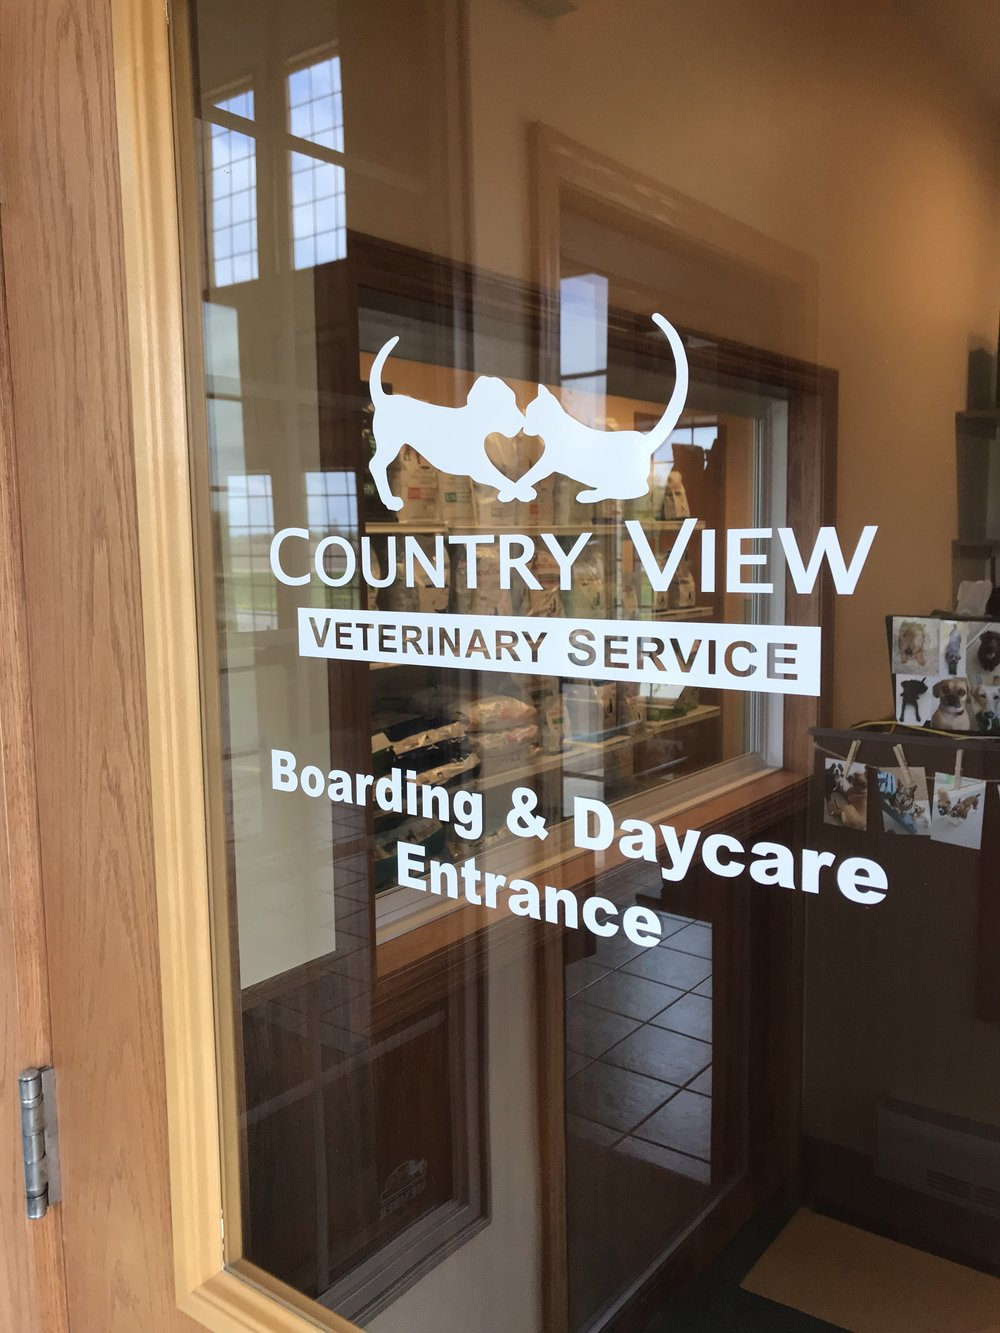 window_lettering_CountryViewVet.jpg